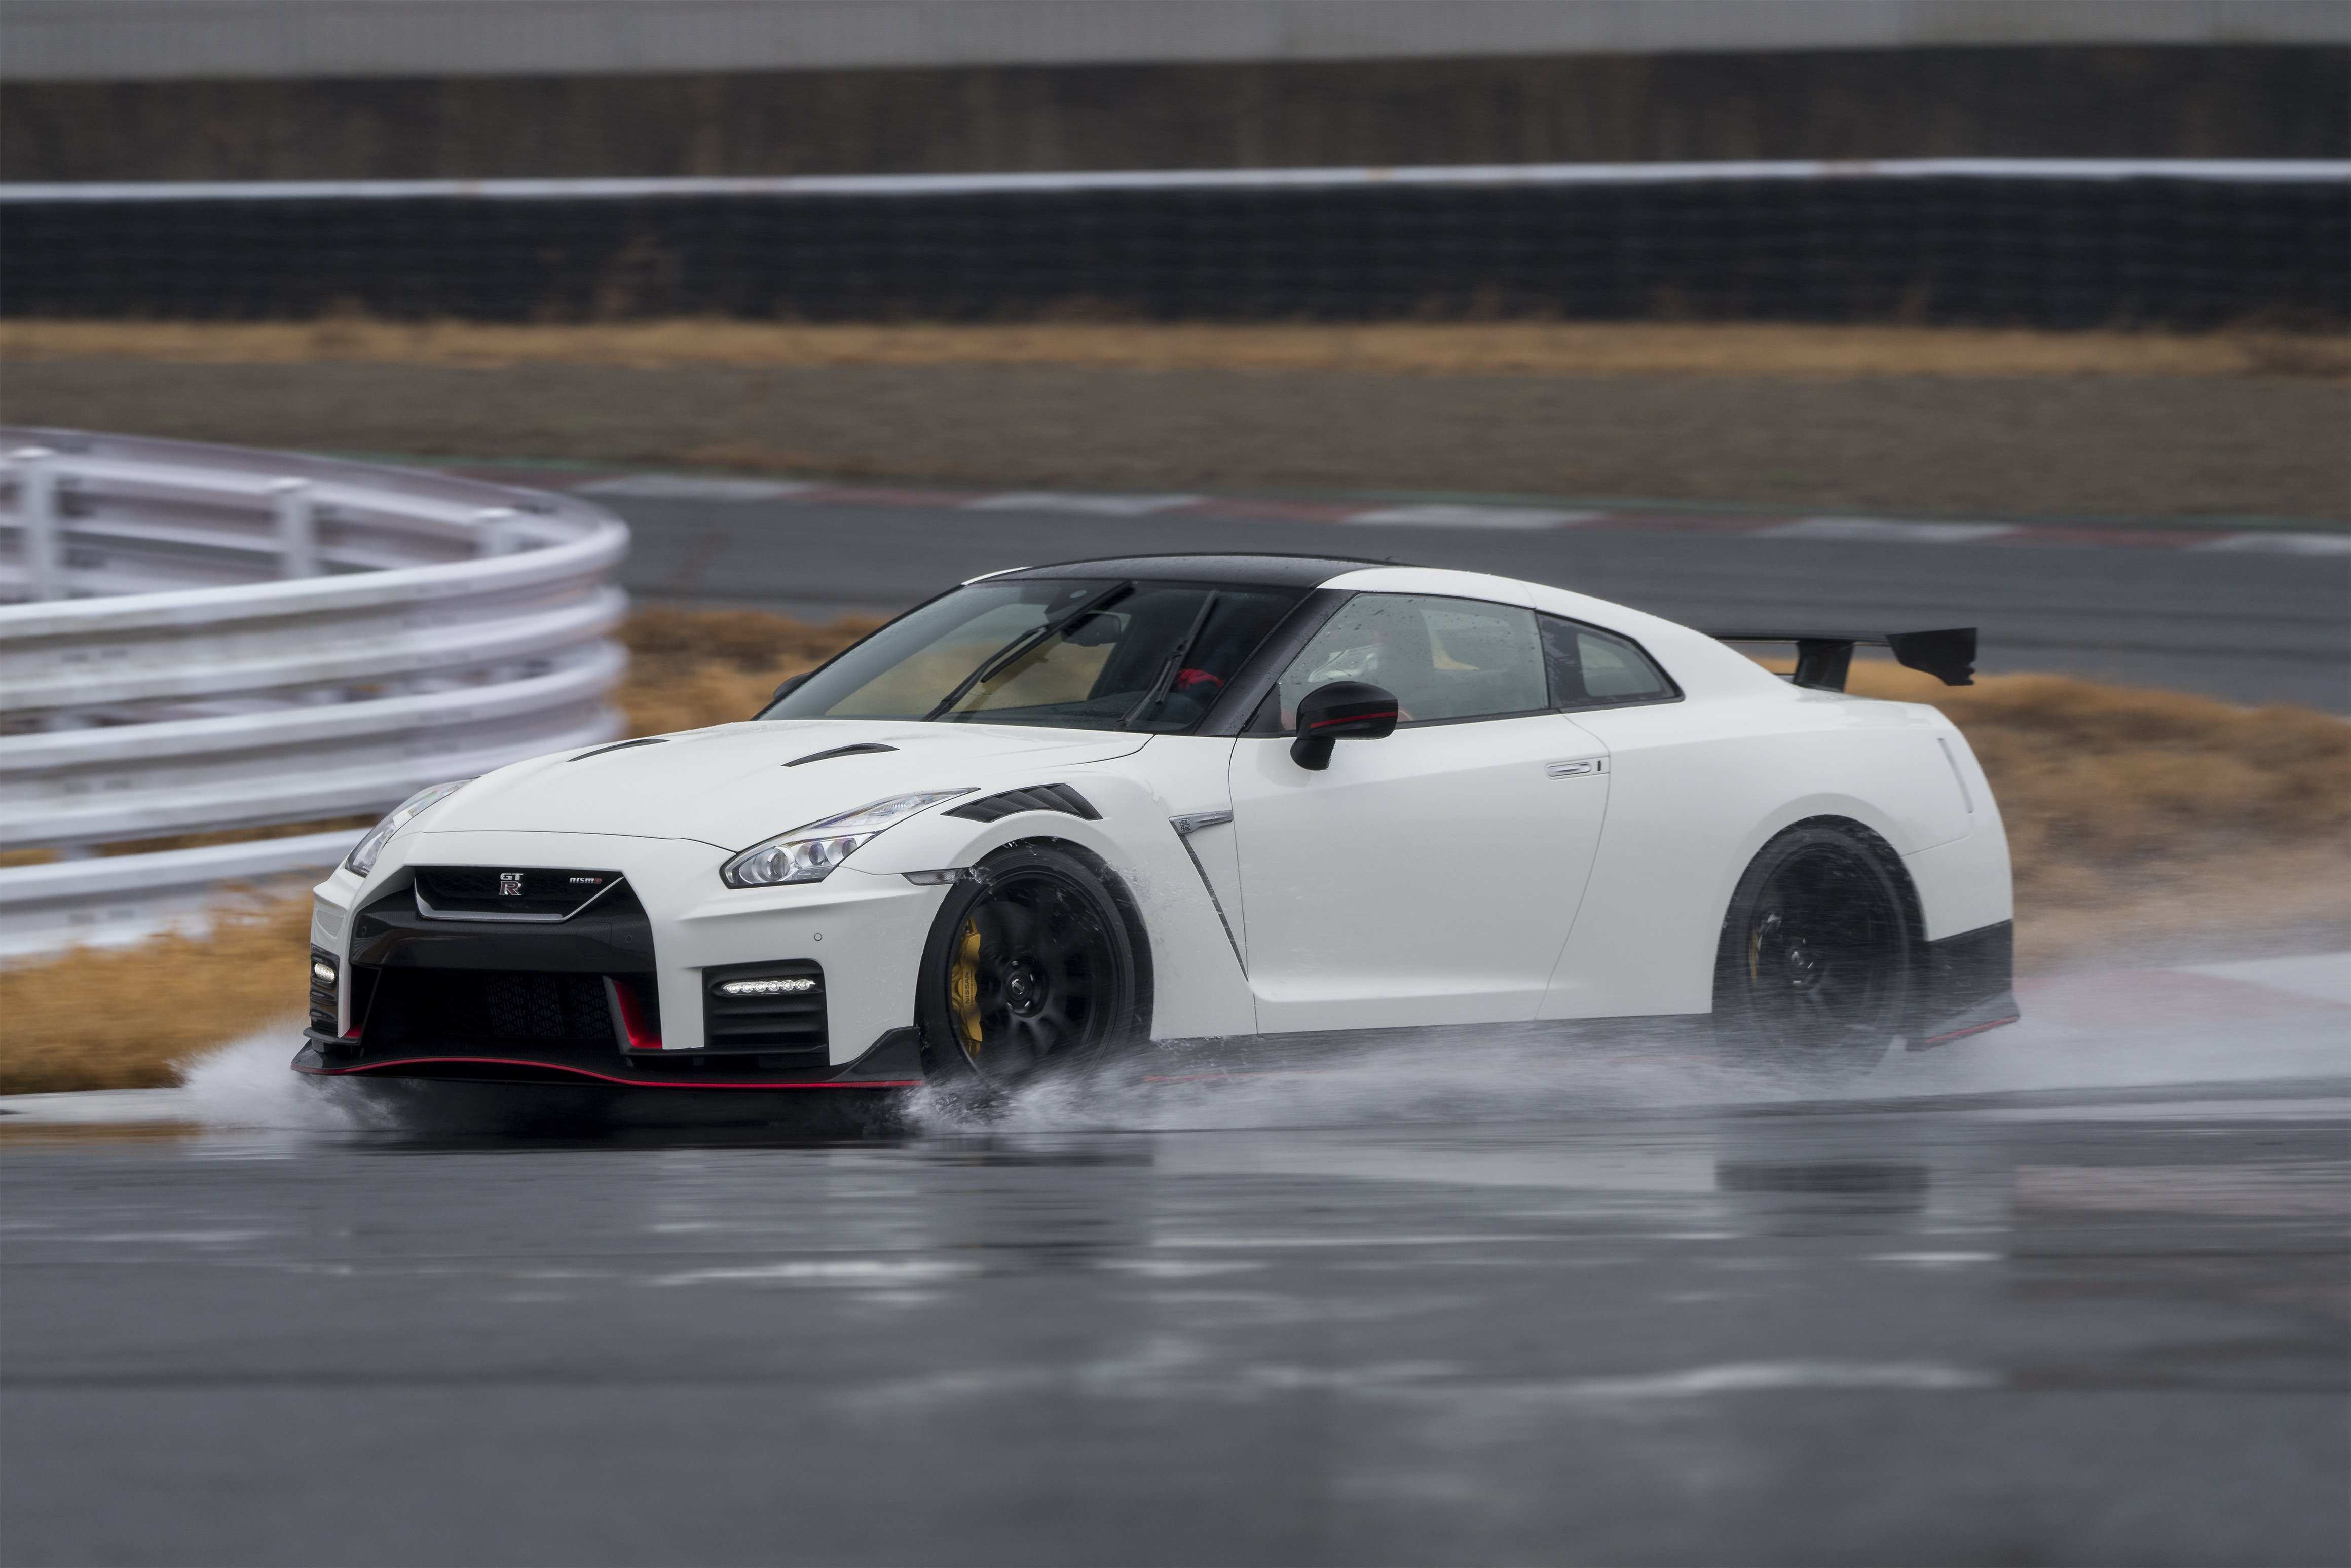 69 All New 2020 Nissan Gt R Images